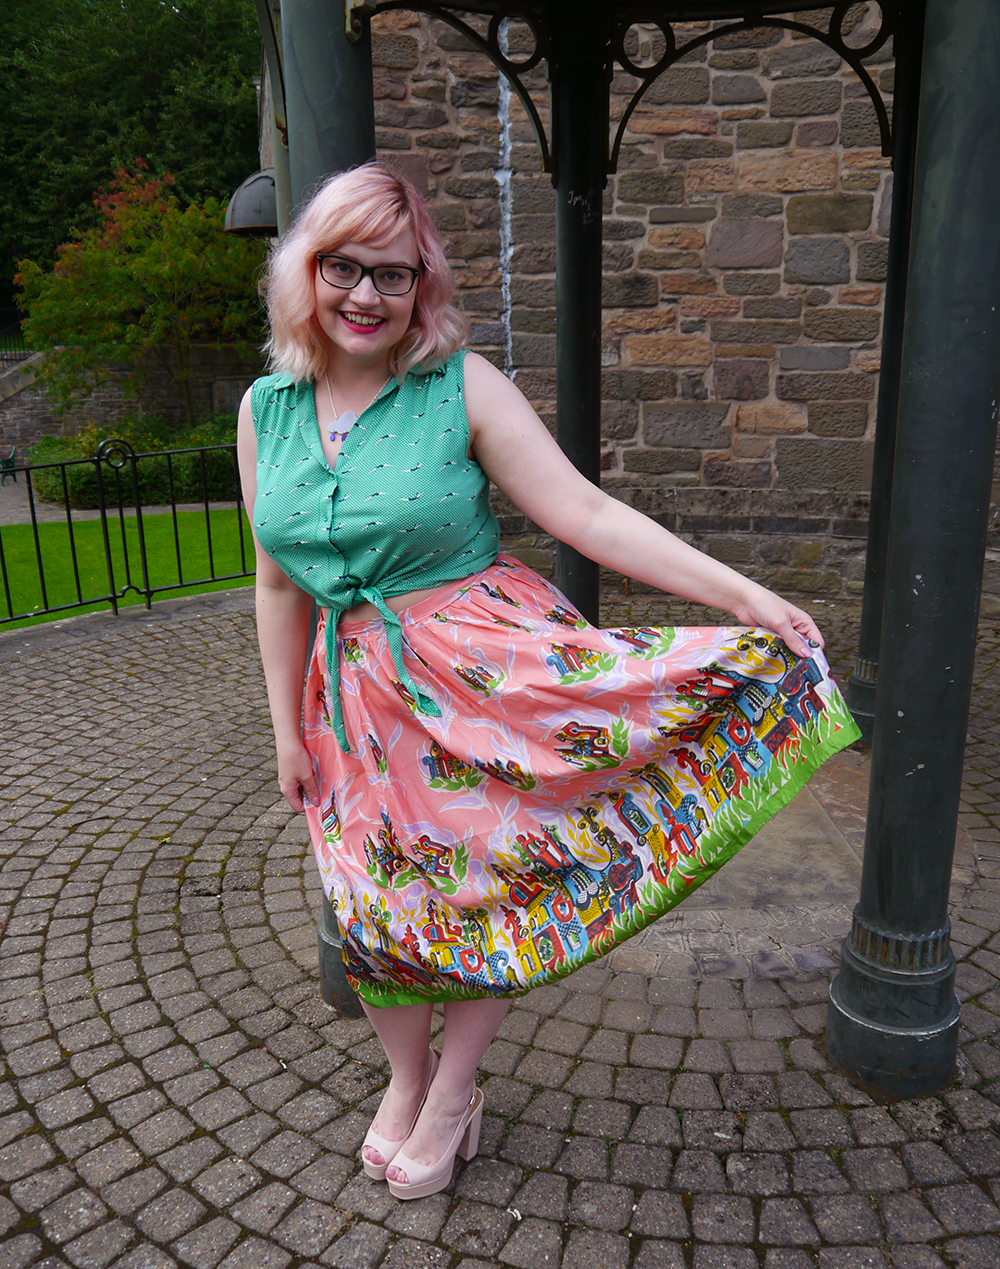 Nicely Eclectic, vintage clothing, Dundee photoshoot location, swing dress, BOB by DOP, H! Henry Holland, Sugar and Vice rain drop neckalce, modern styling with vintage, pink hair, candy floss hair DIY